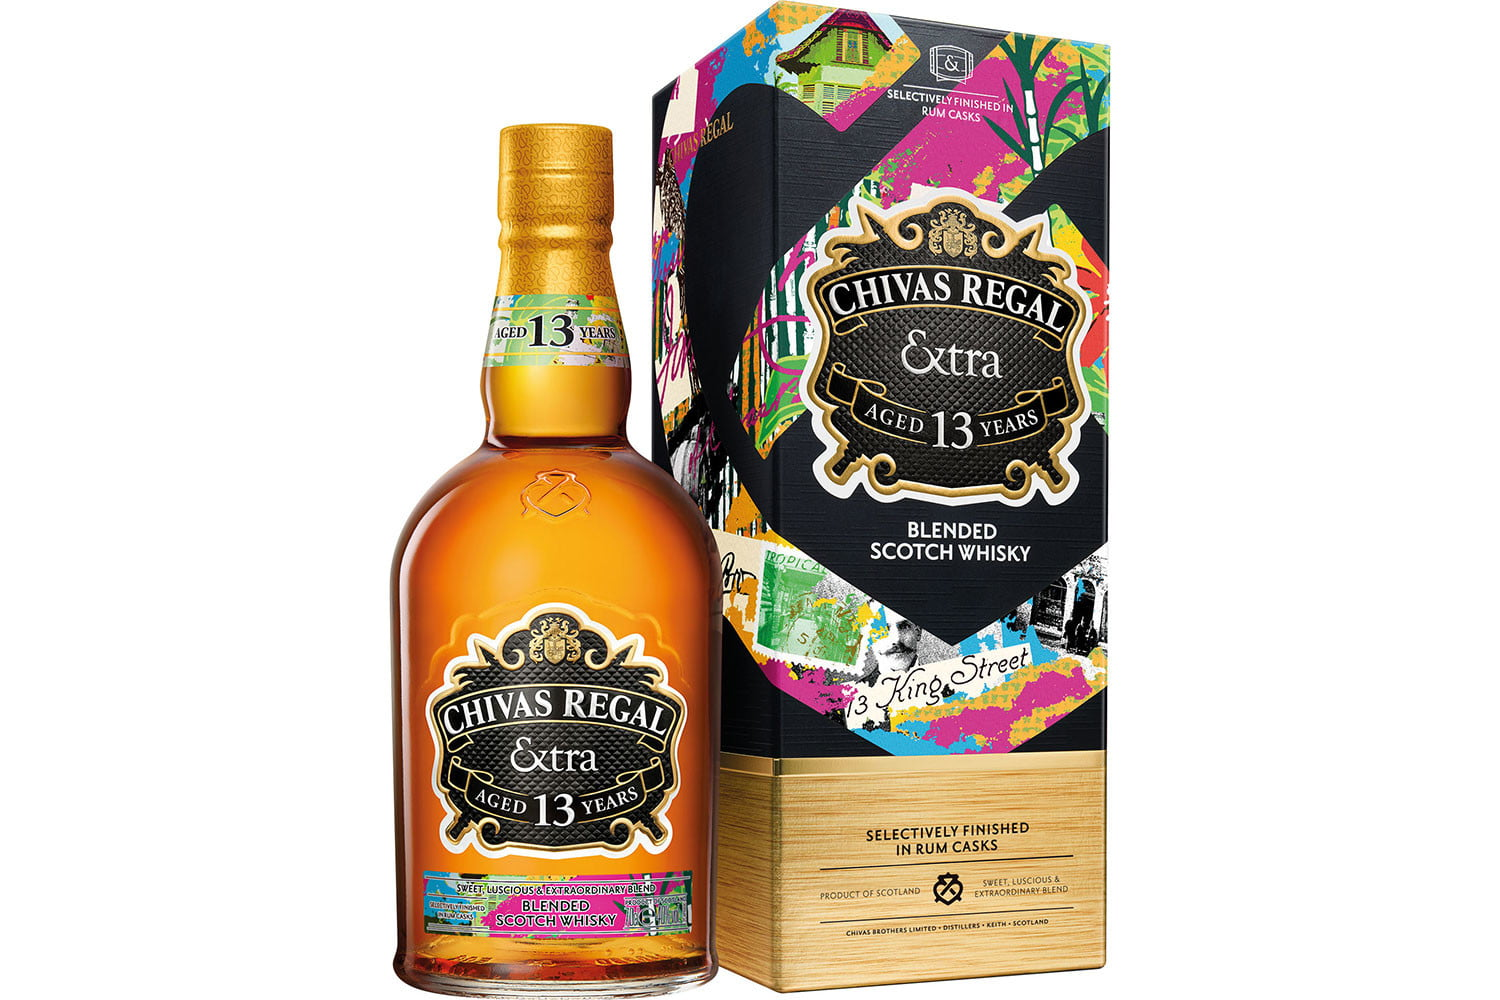 chivas extra 13 collection rum packshot bottle and box 70cl